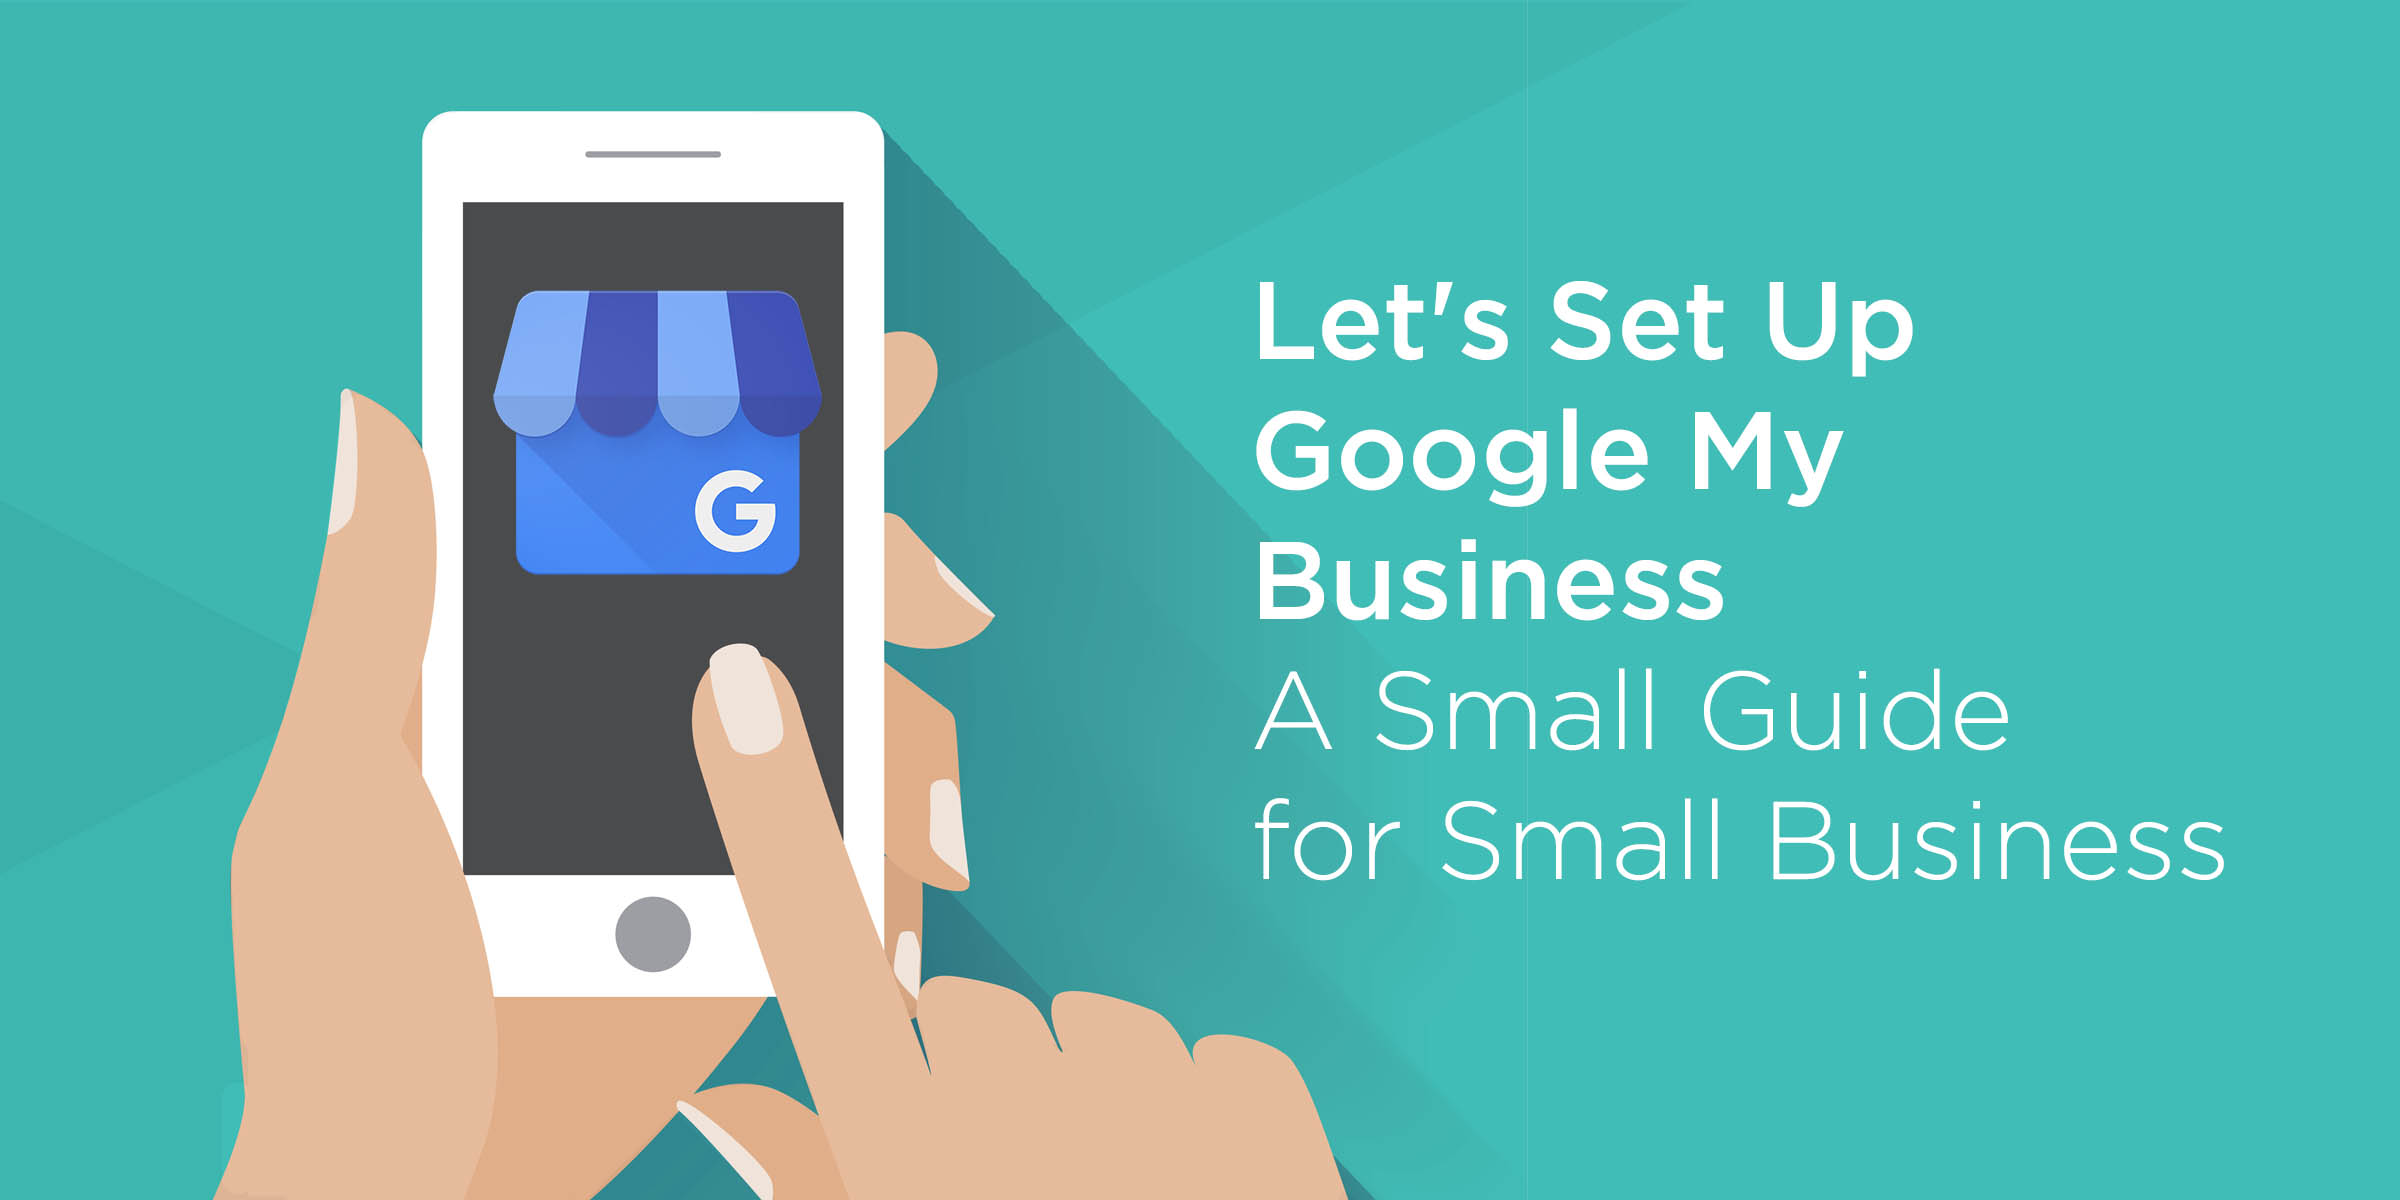 Let's Set Up Google My Business A Small Guide for Small Business – McBreen Marketing – Fort Collins, CO